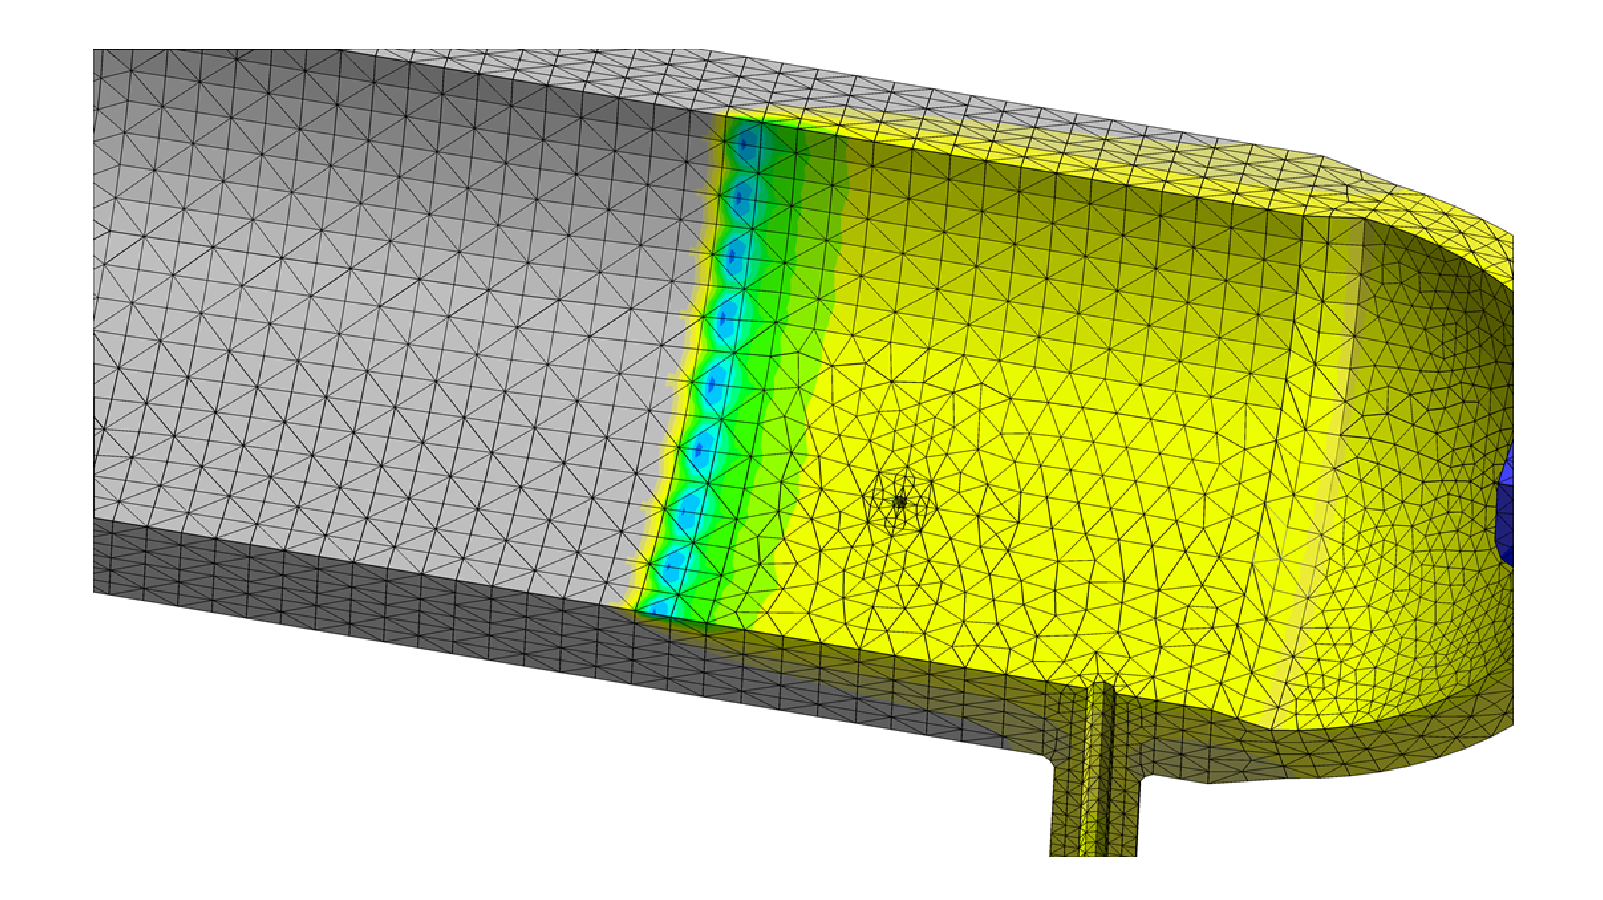 Figure 2: Transient thermal results during simulated filling operation